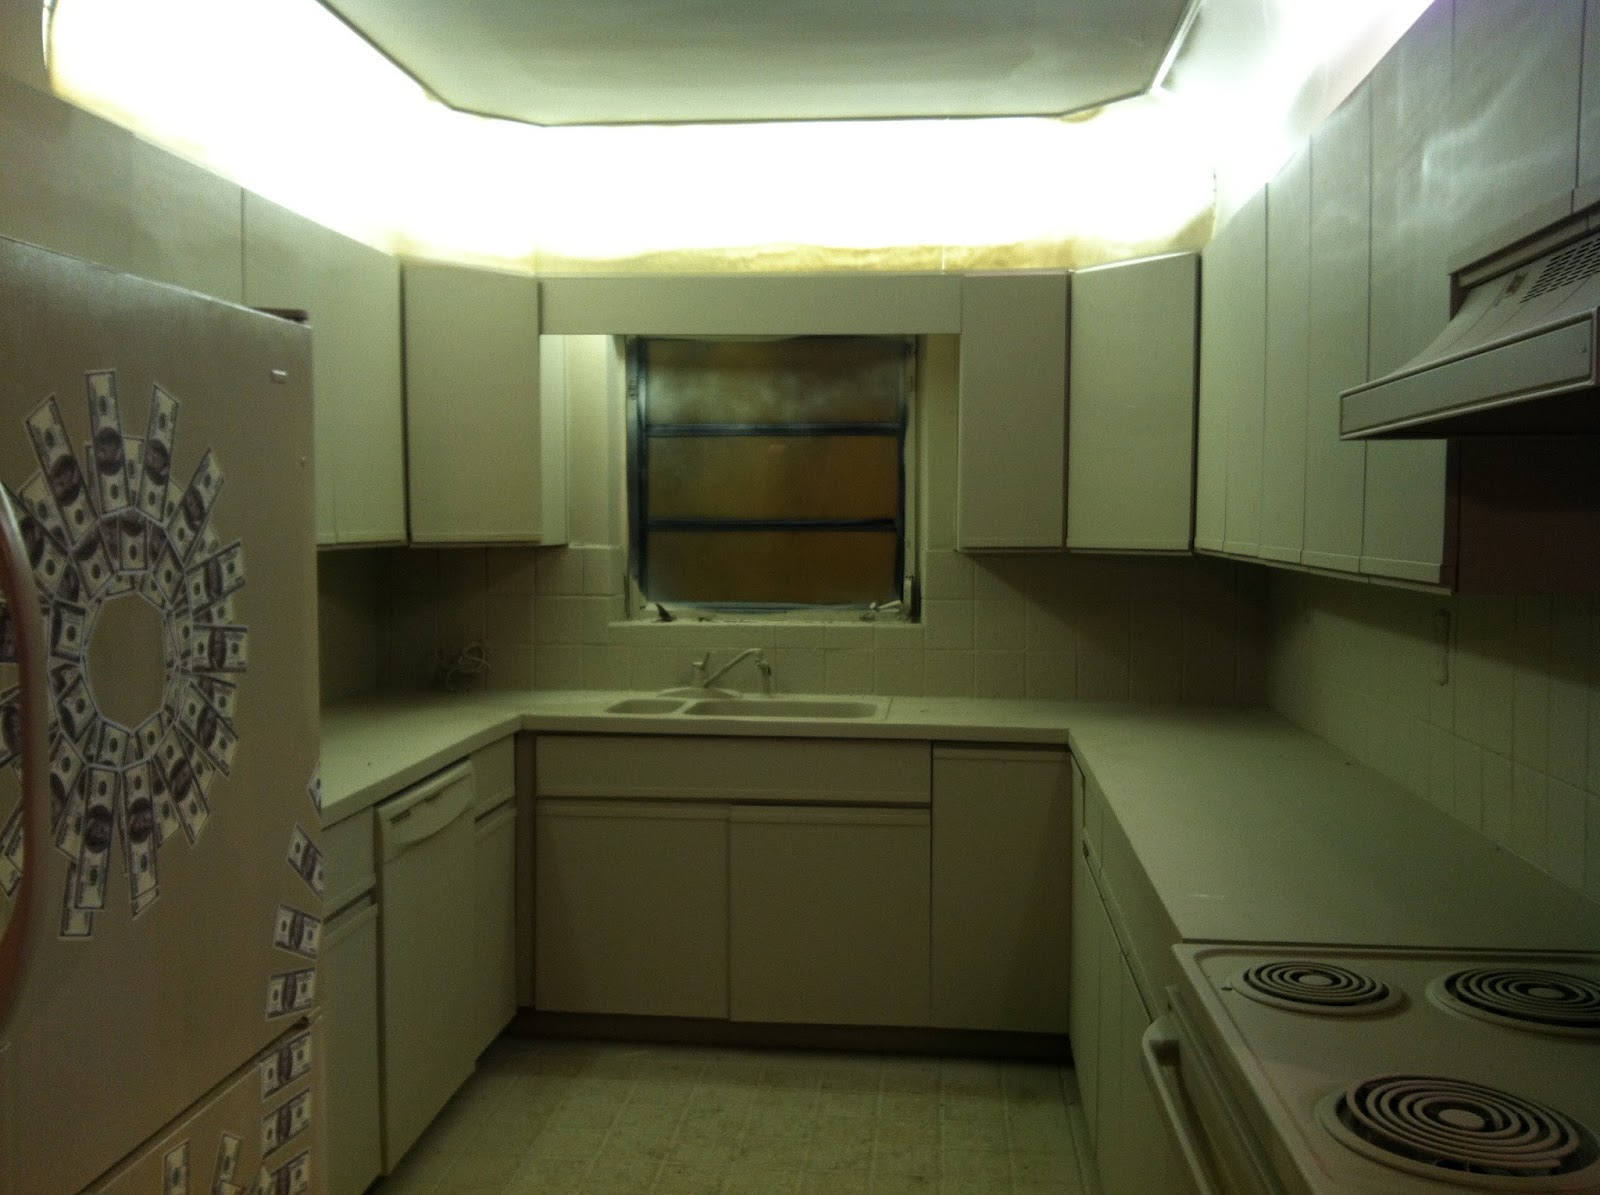 Whole Kitchen Painted Creamy Walls And Cabinets